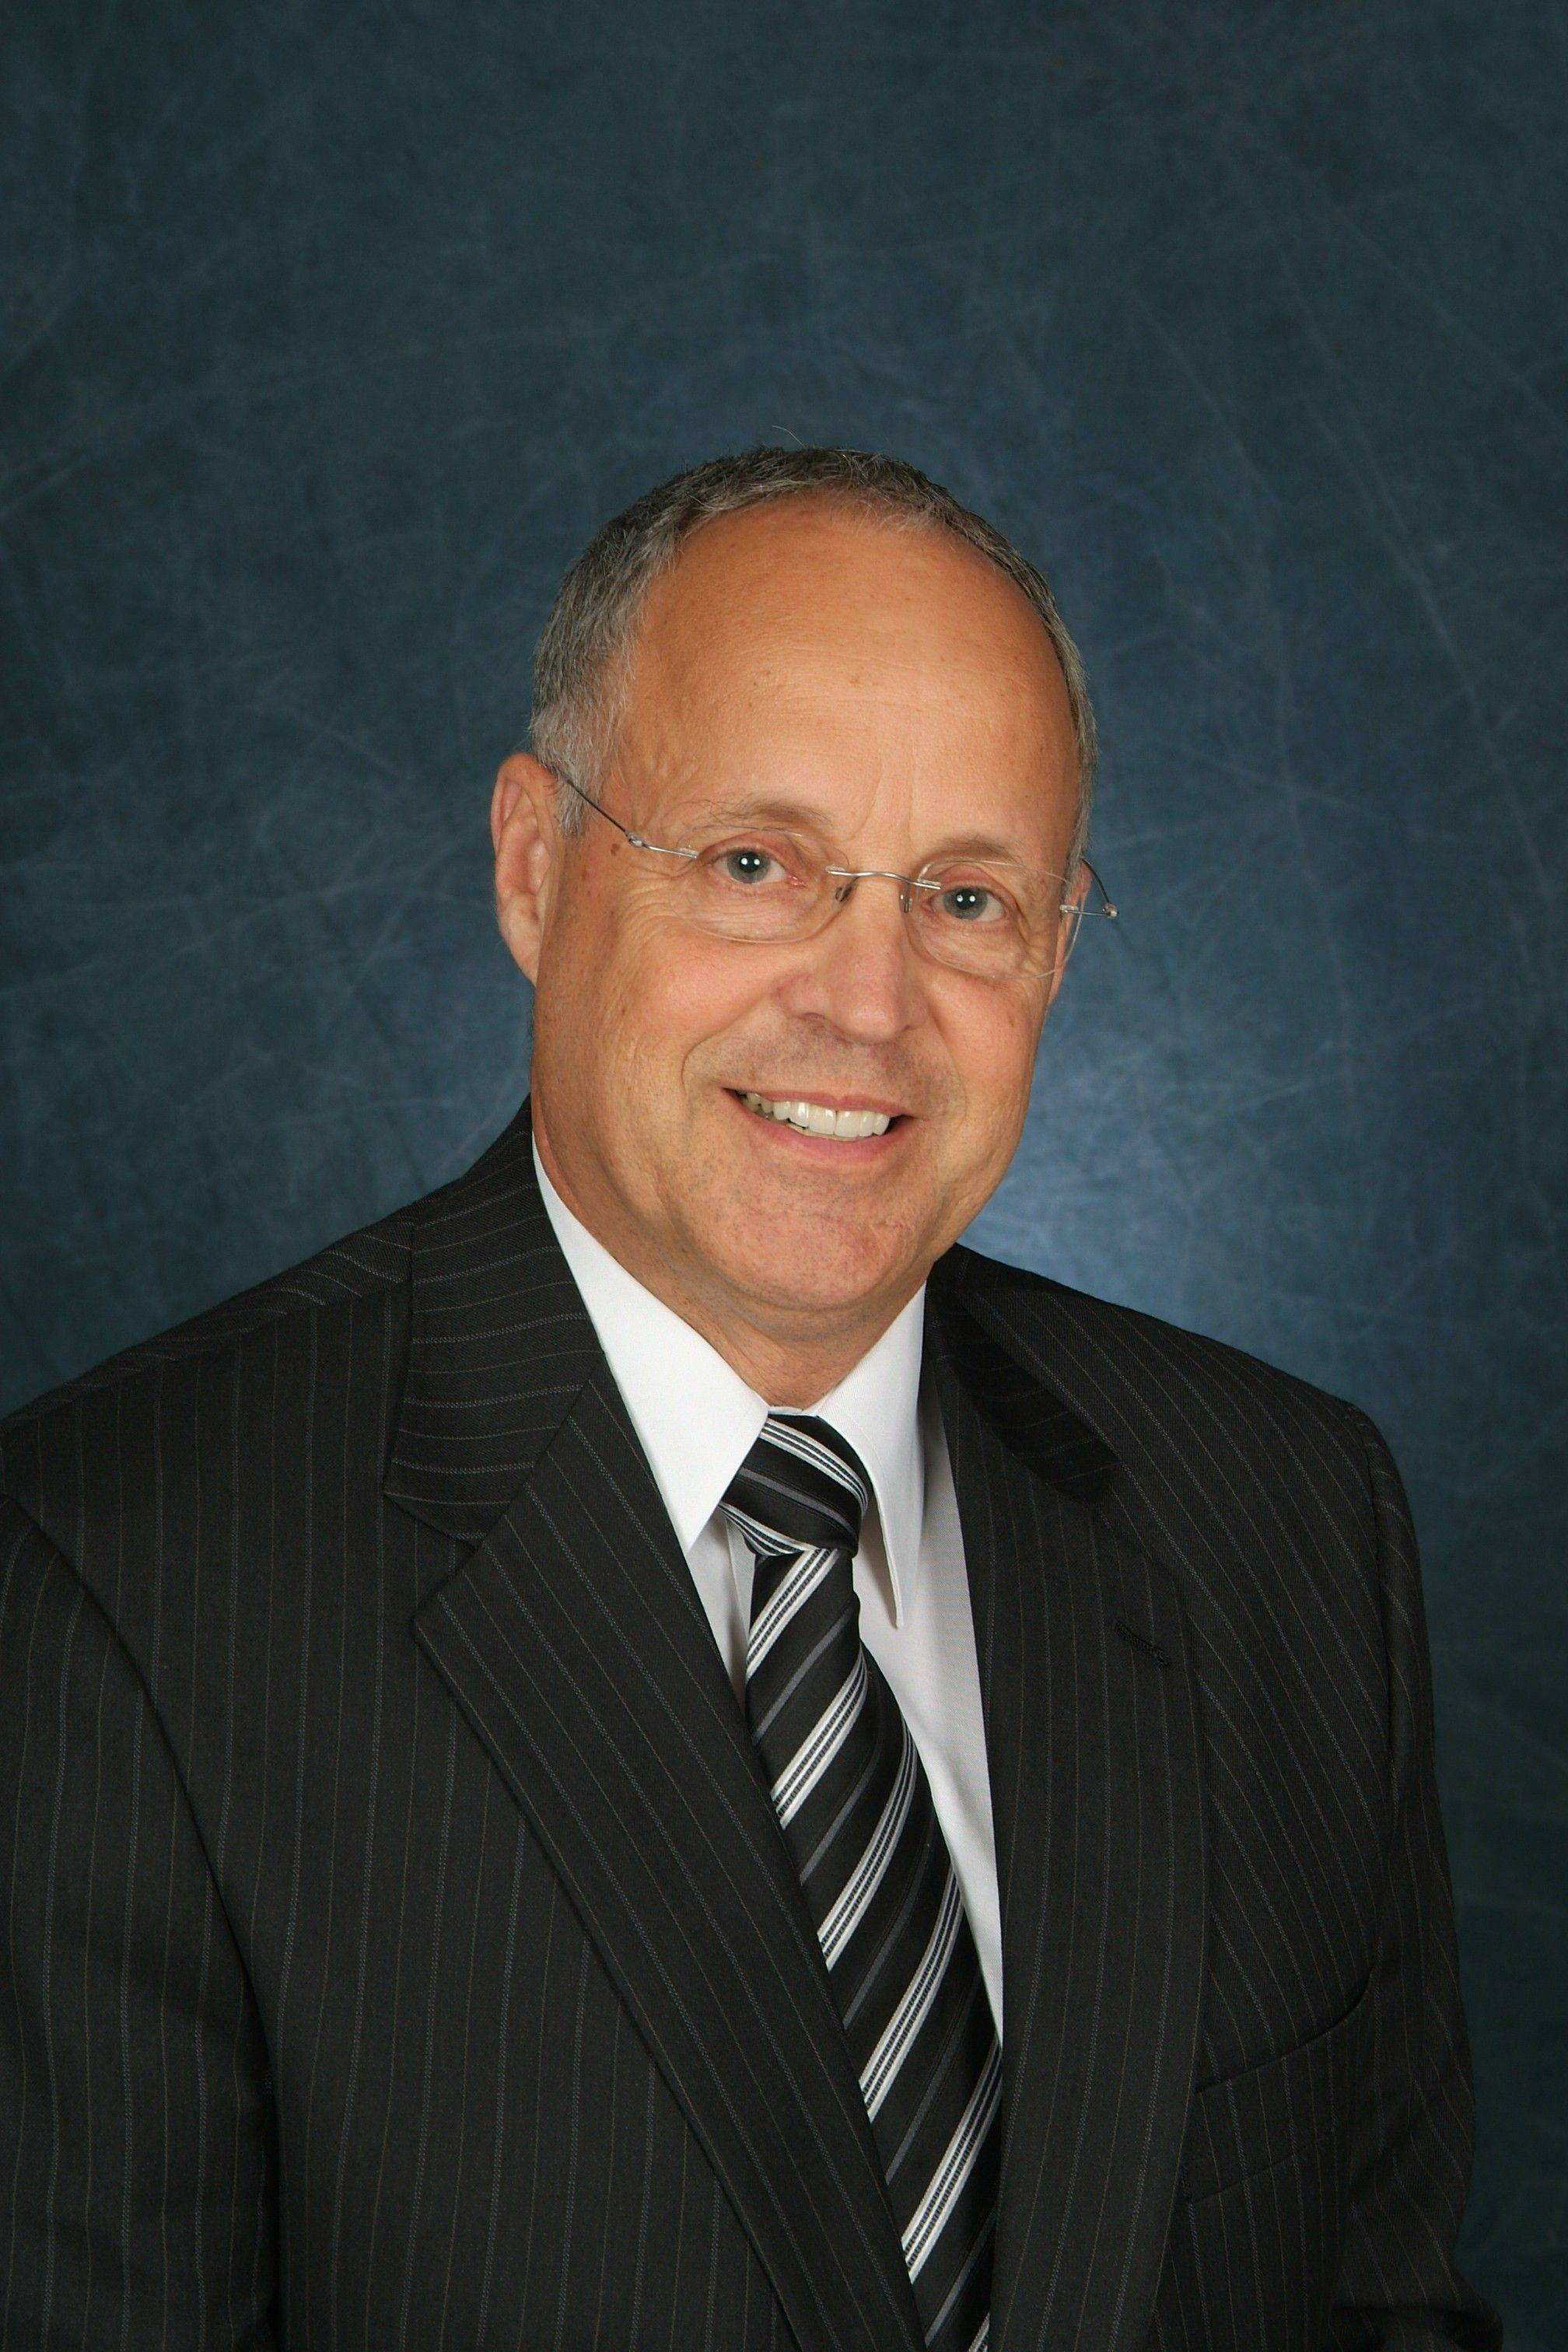 DuPage Dist. 88 superintendent to retire in 2012